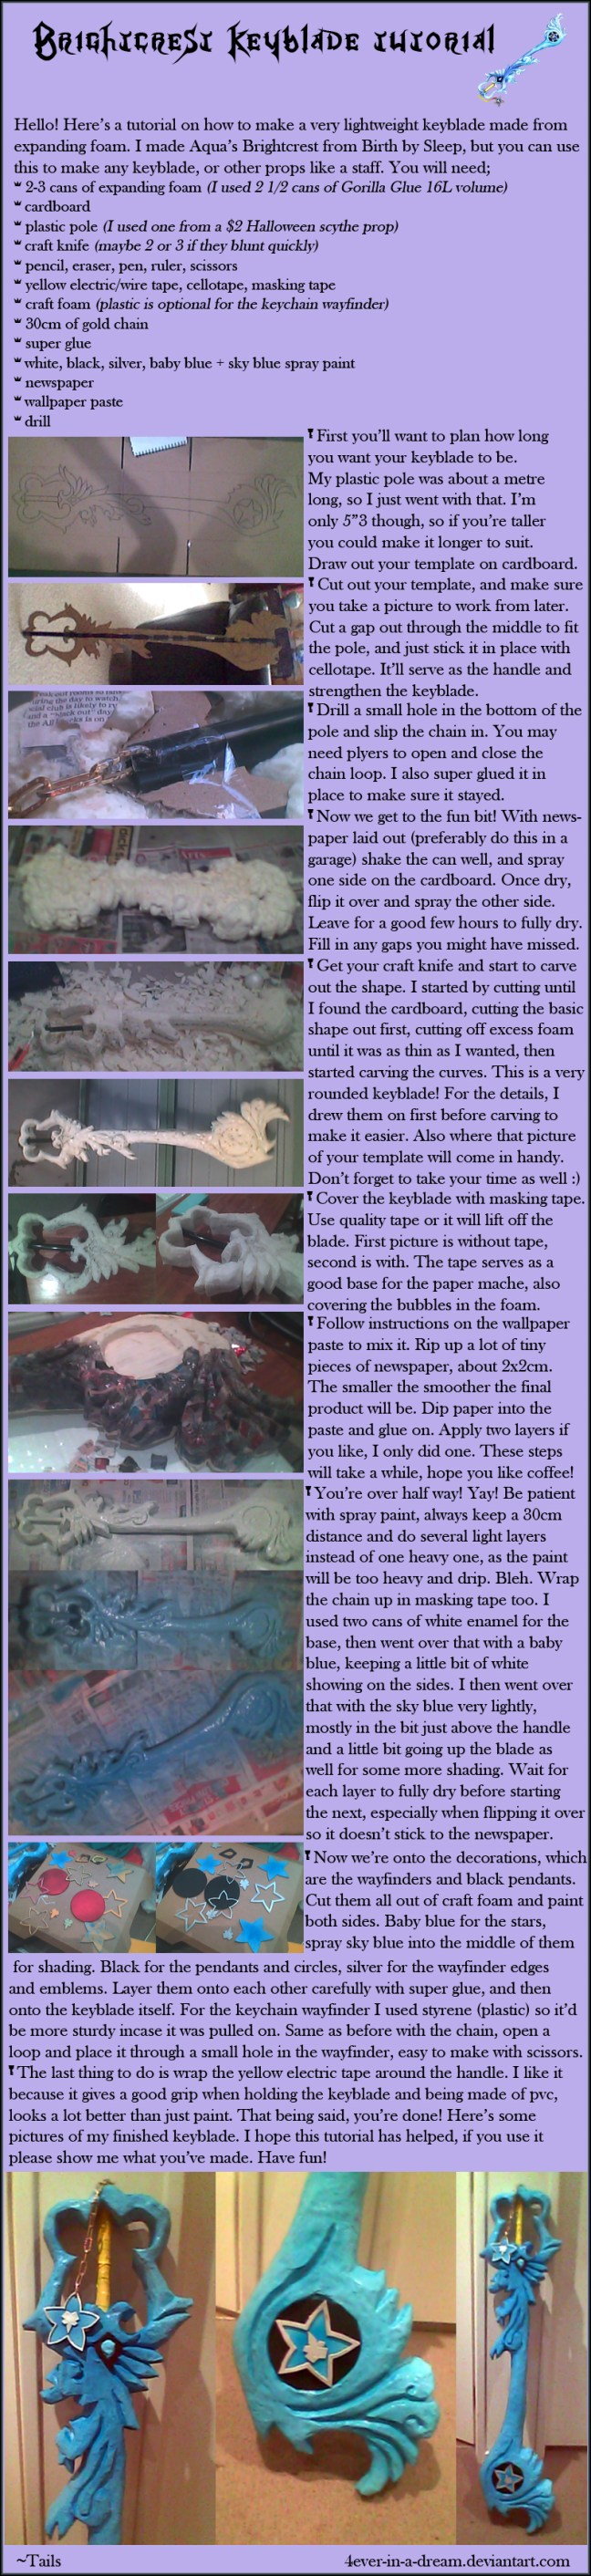 How to Make Kingdom Hearts Brightcrest Keyblade